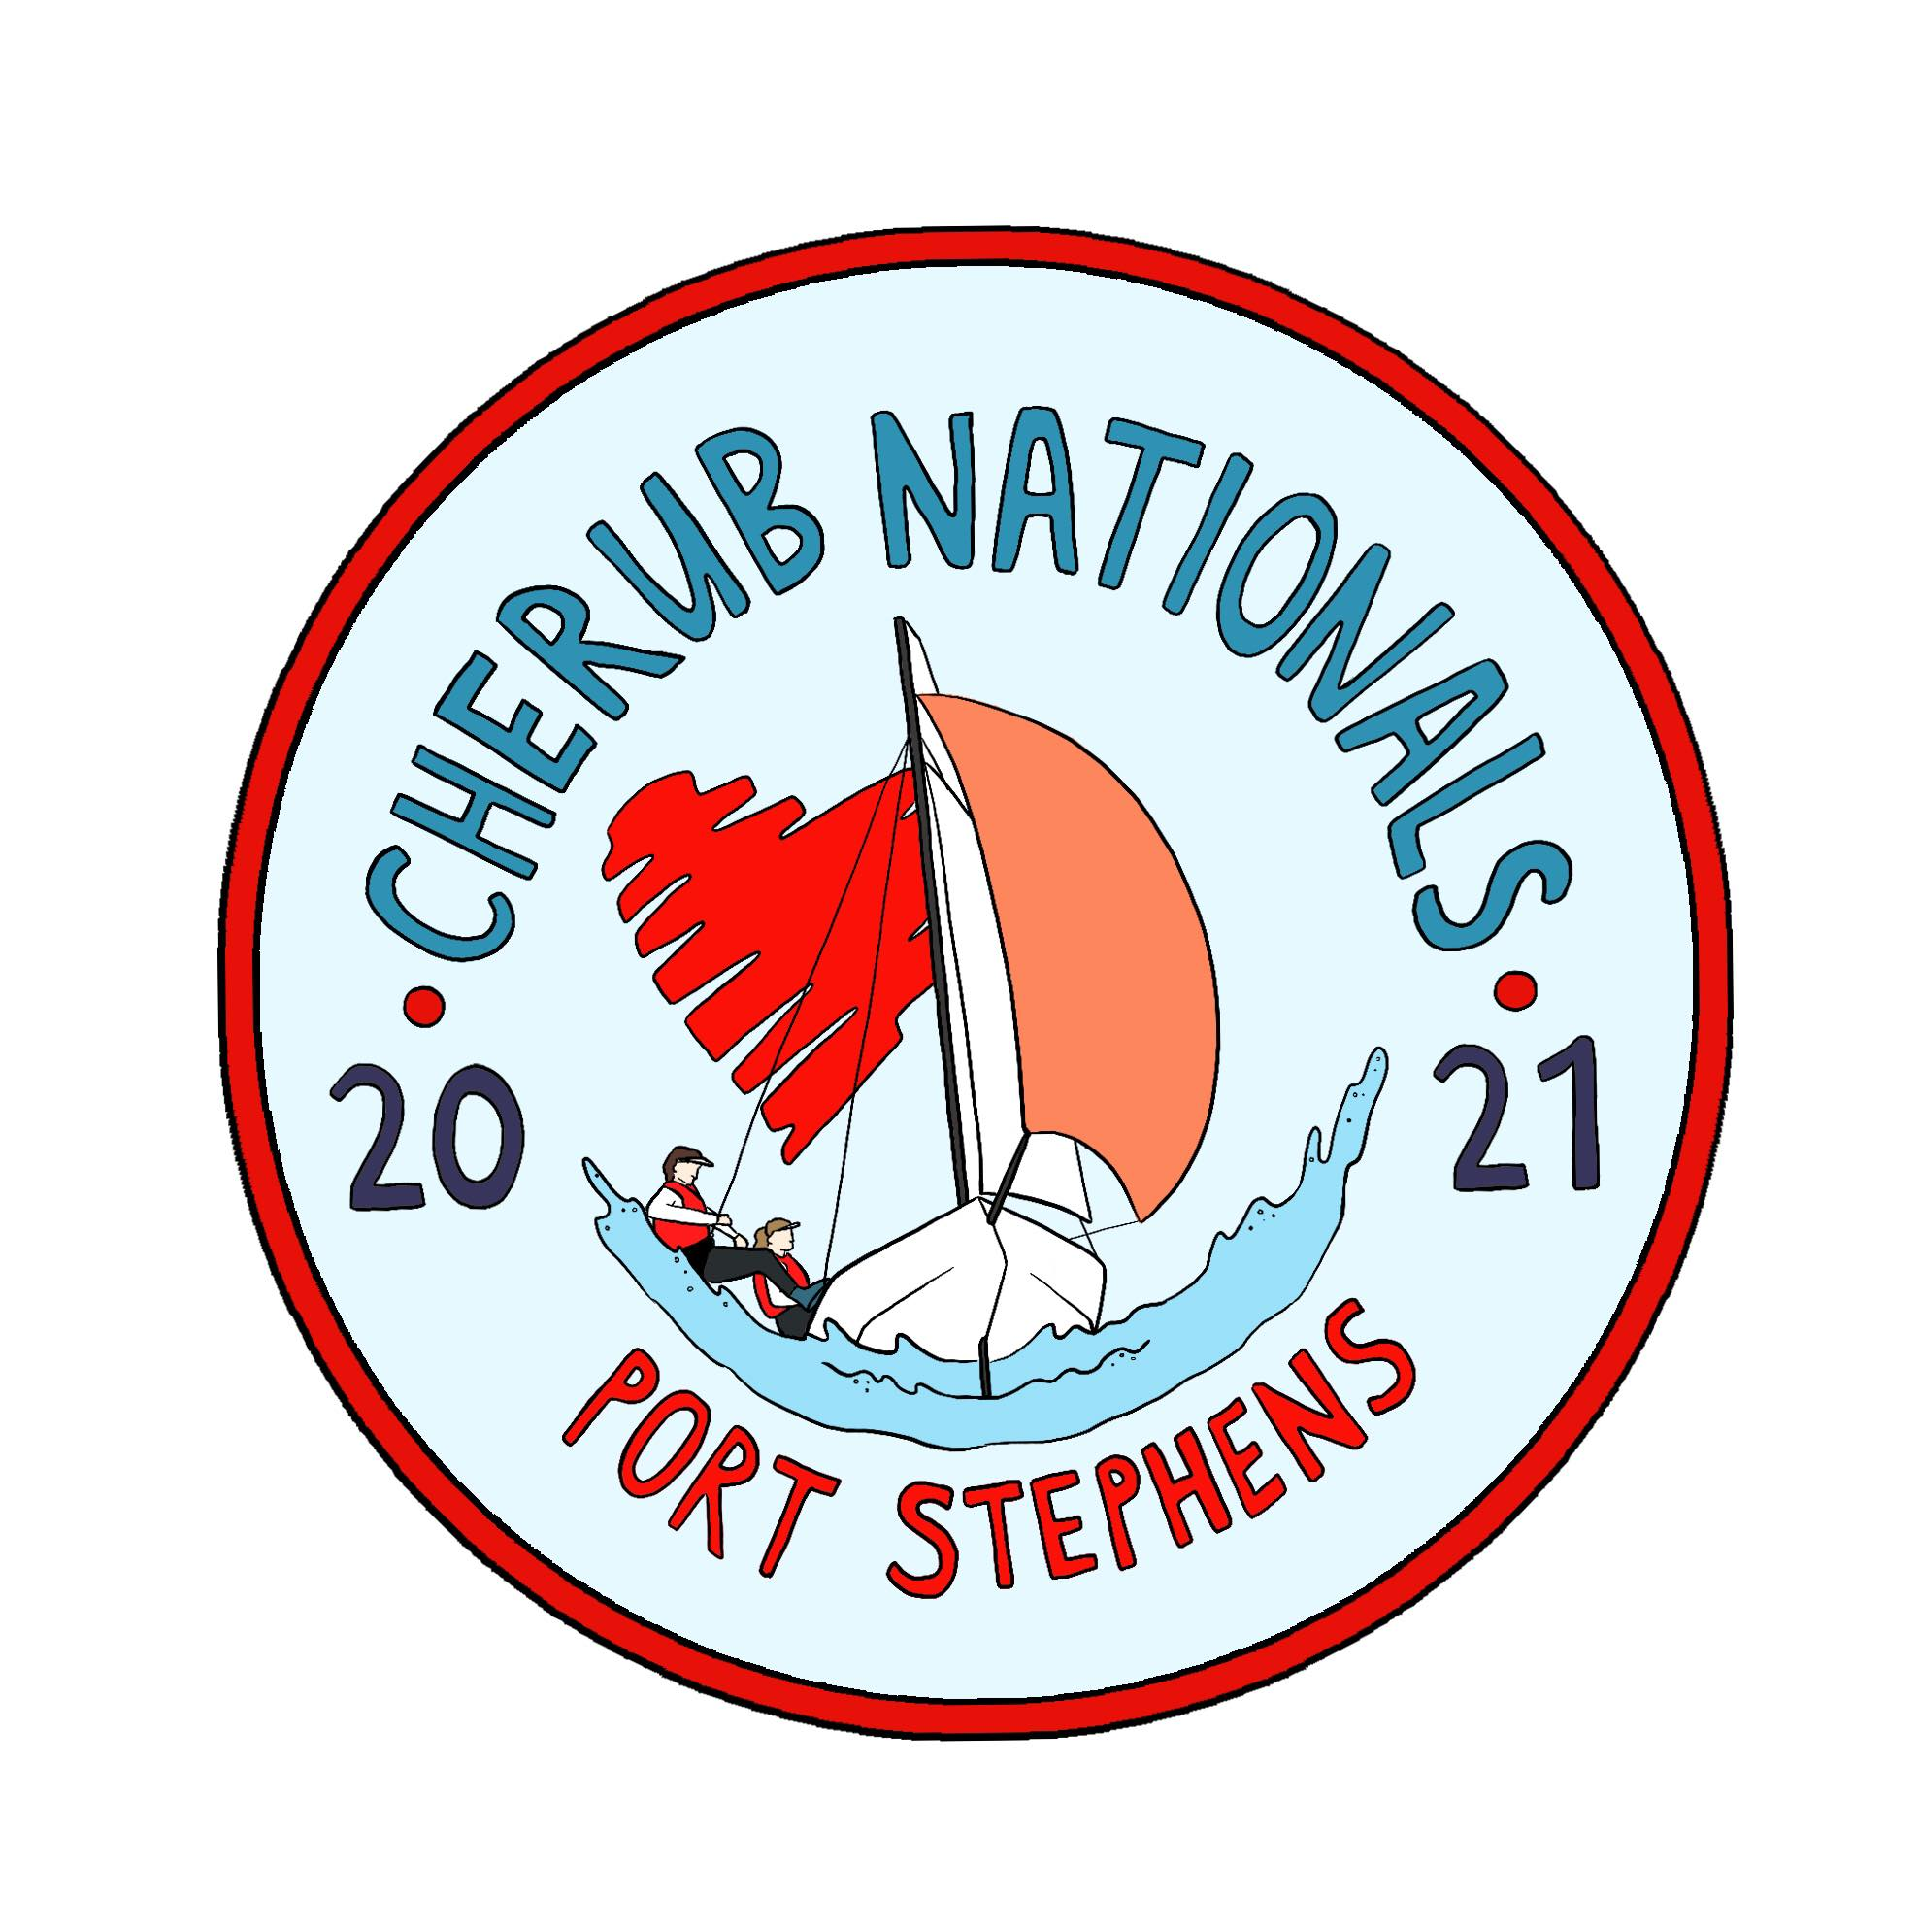 58th Cherub Nationals NOR Announcement